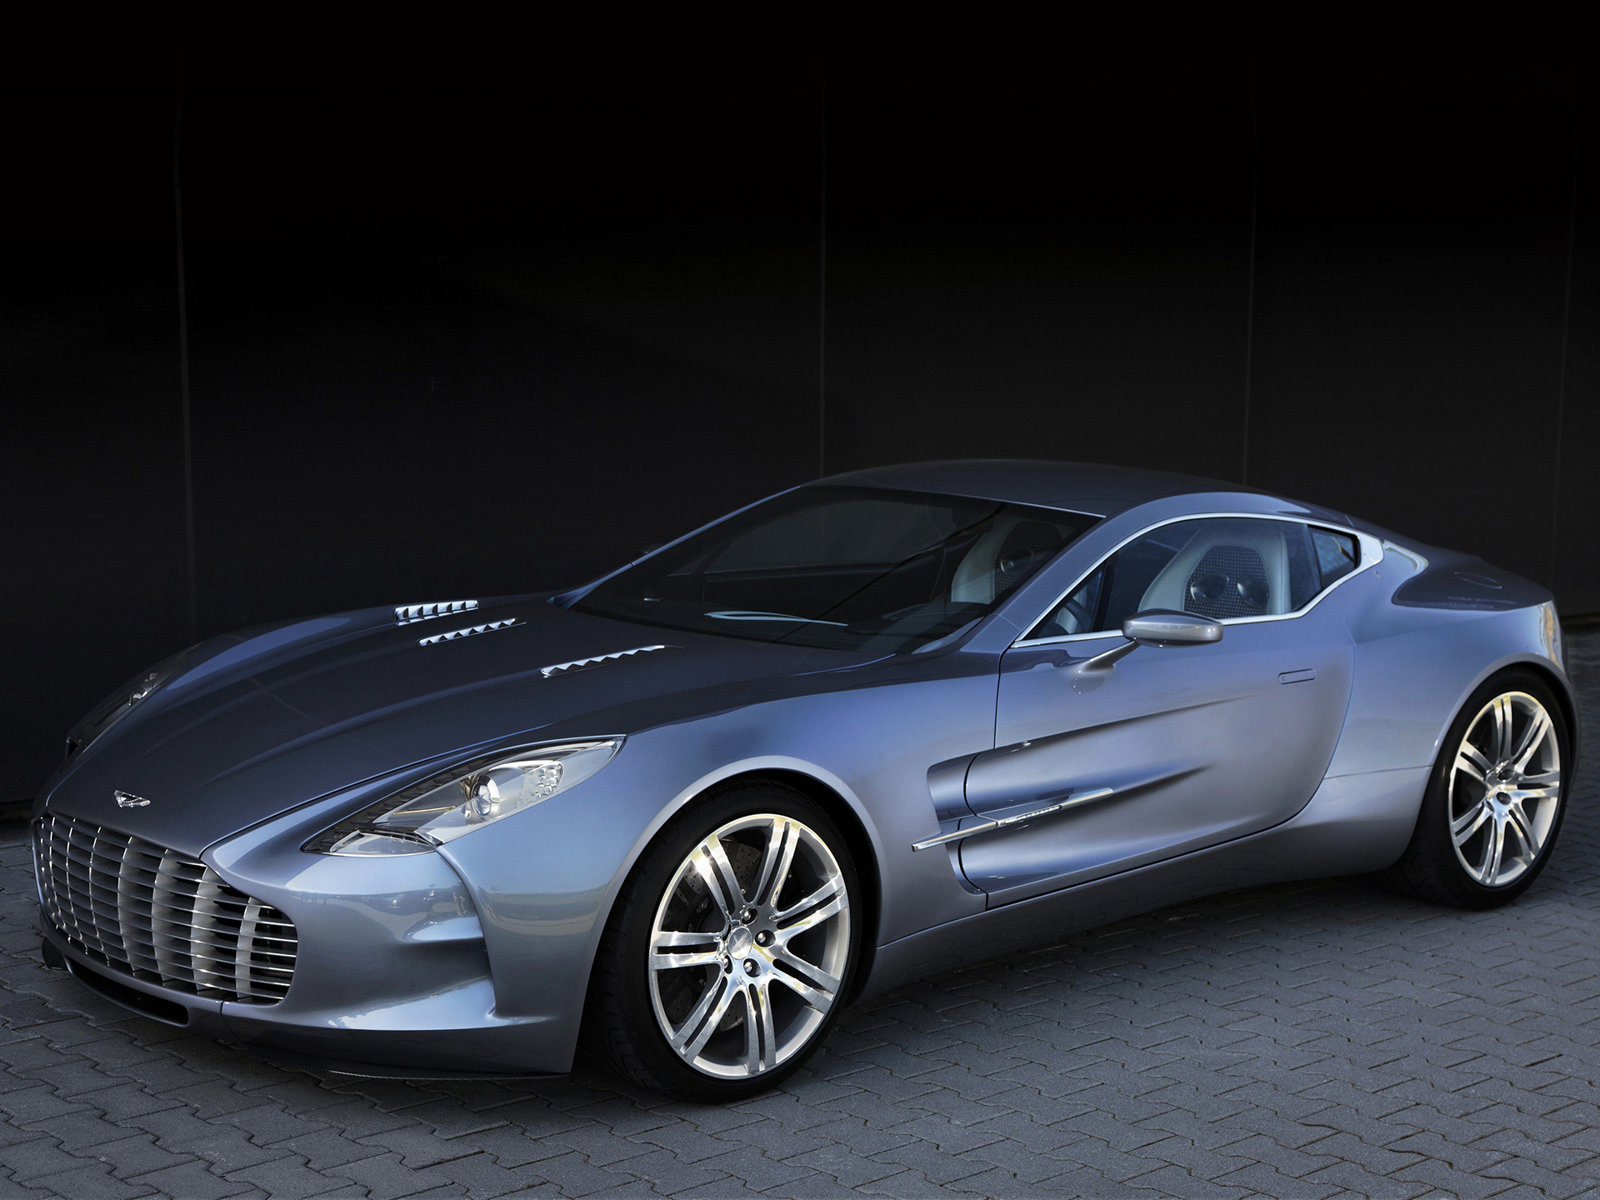 2010 aston martin one 77 car desktop wallpapers wallpaper desktop cool. Black Bedroom Furniture Sets. Home Design Ideas